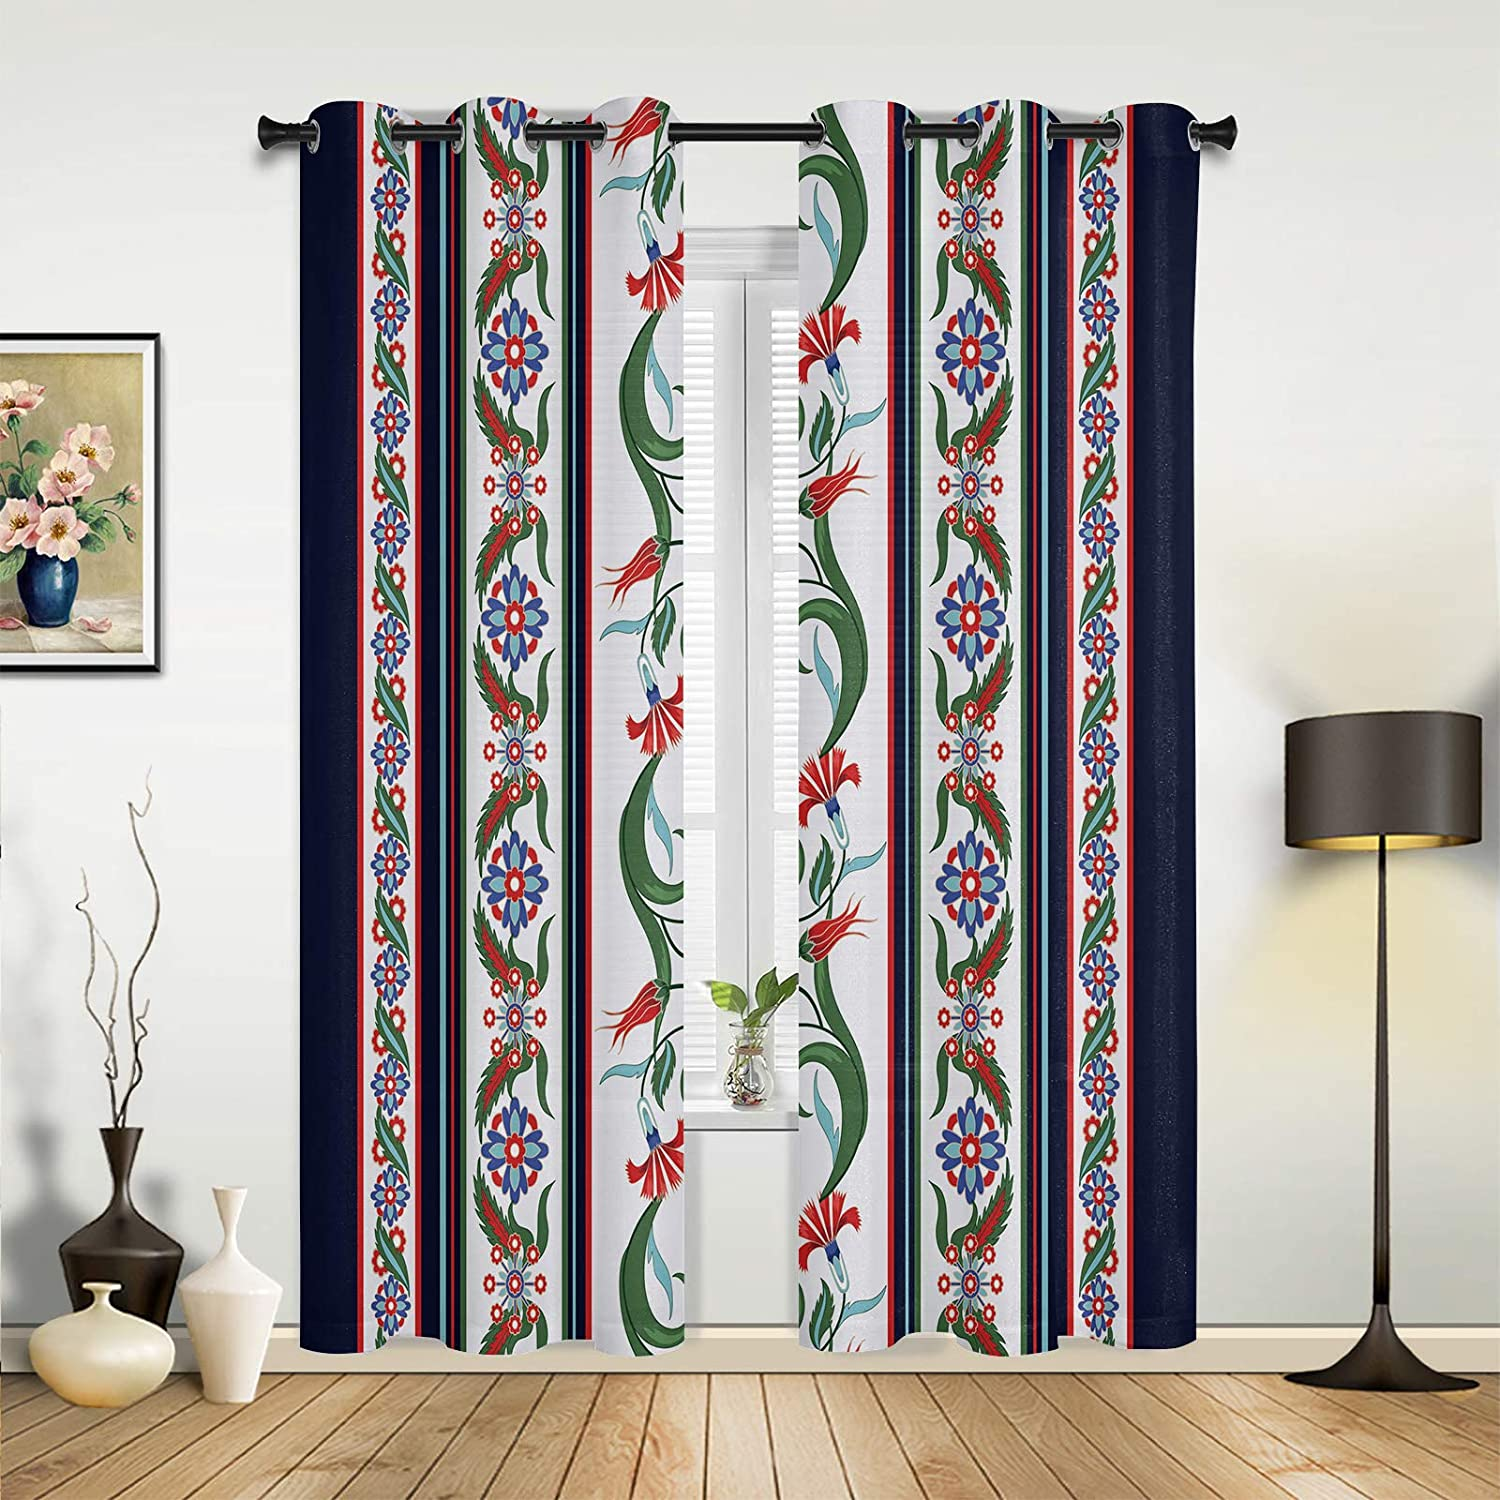 Window Sheer Curtains for 5 ☆ very popular Beauty products Bedroom Flo Retro Living Room Gorgeous